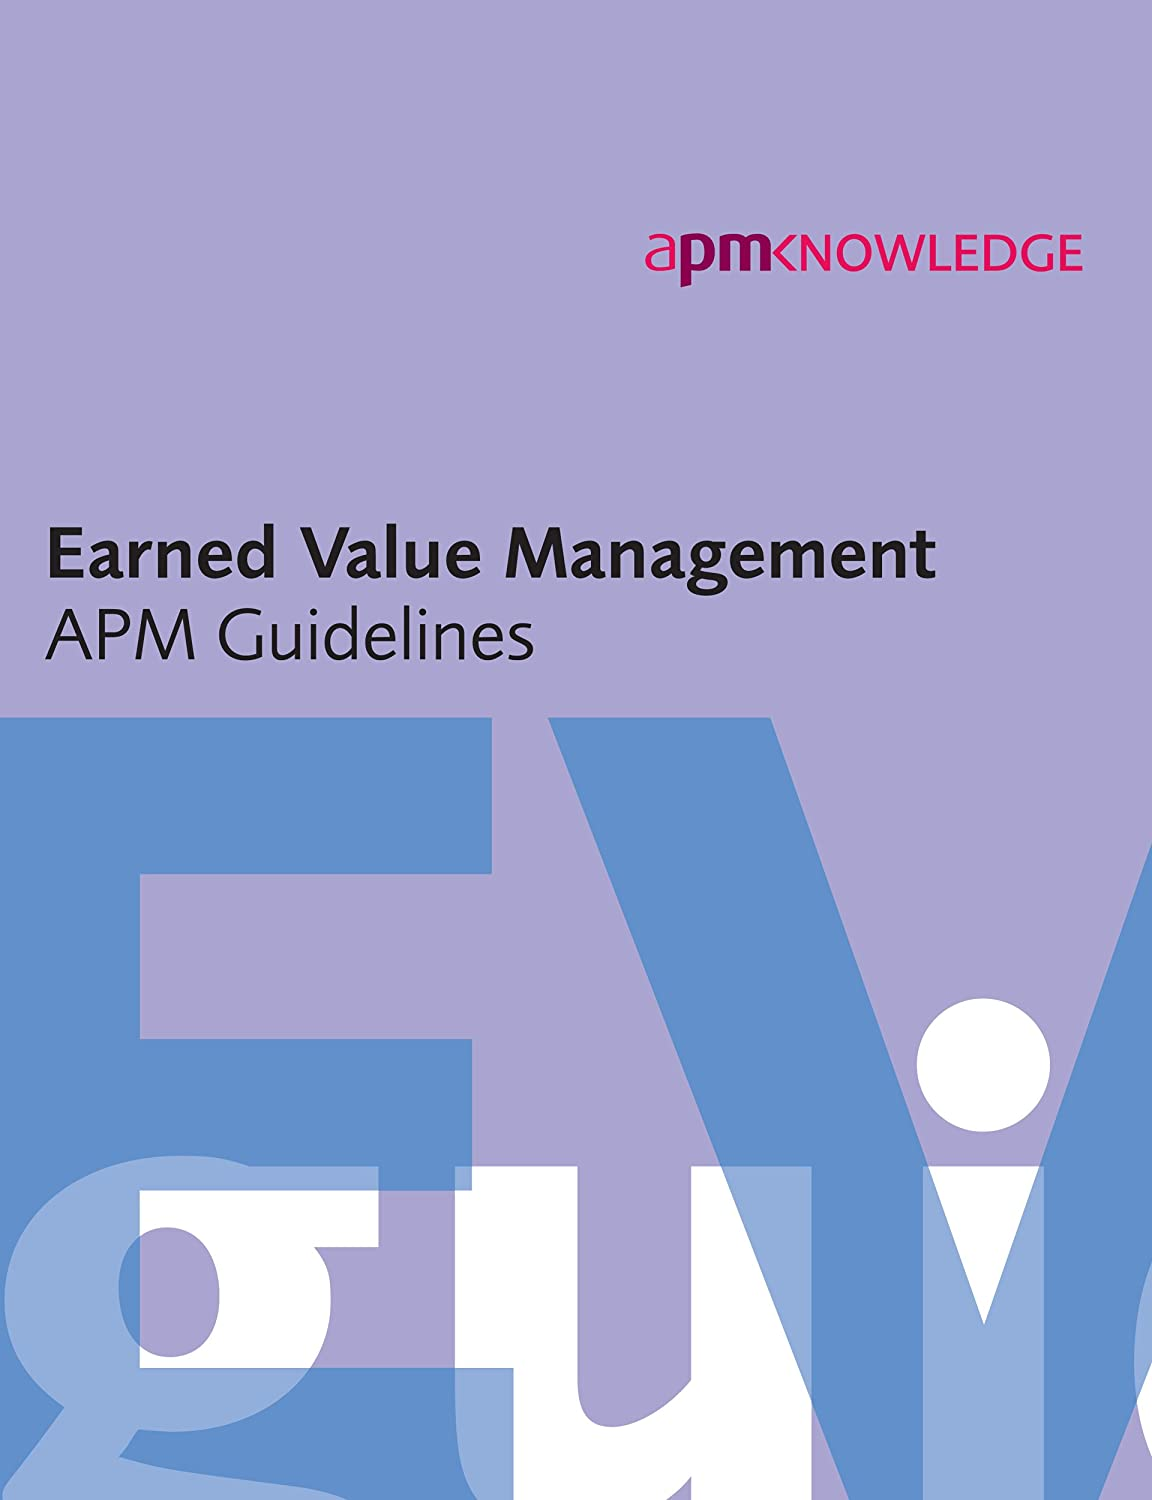 Earned Value Management: APM Guidelines